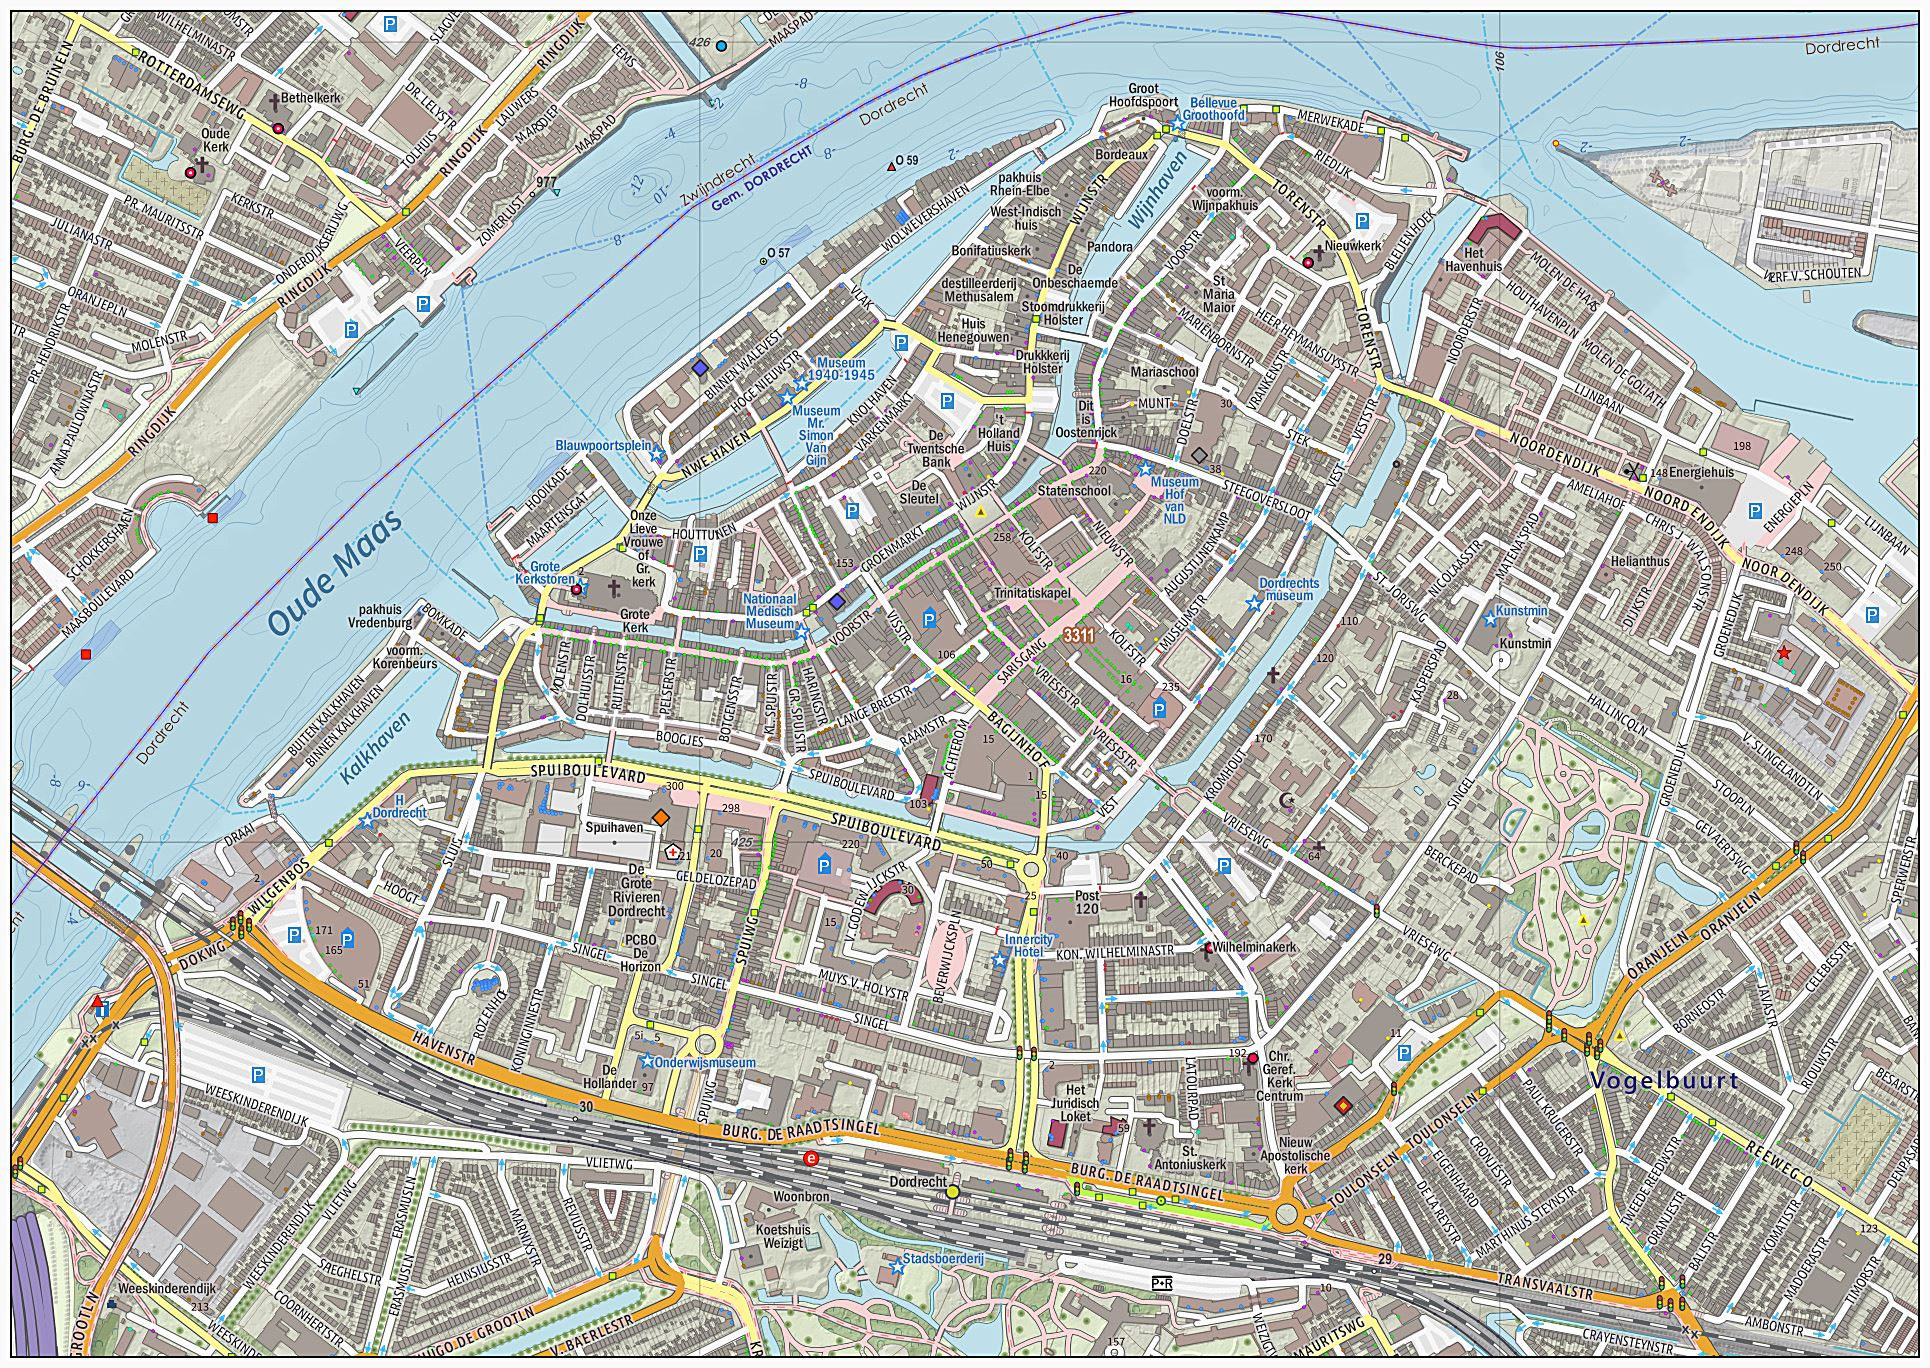 Large Dordrecht Maps for Free Download and Print HighResolution